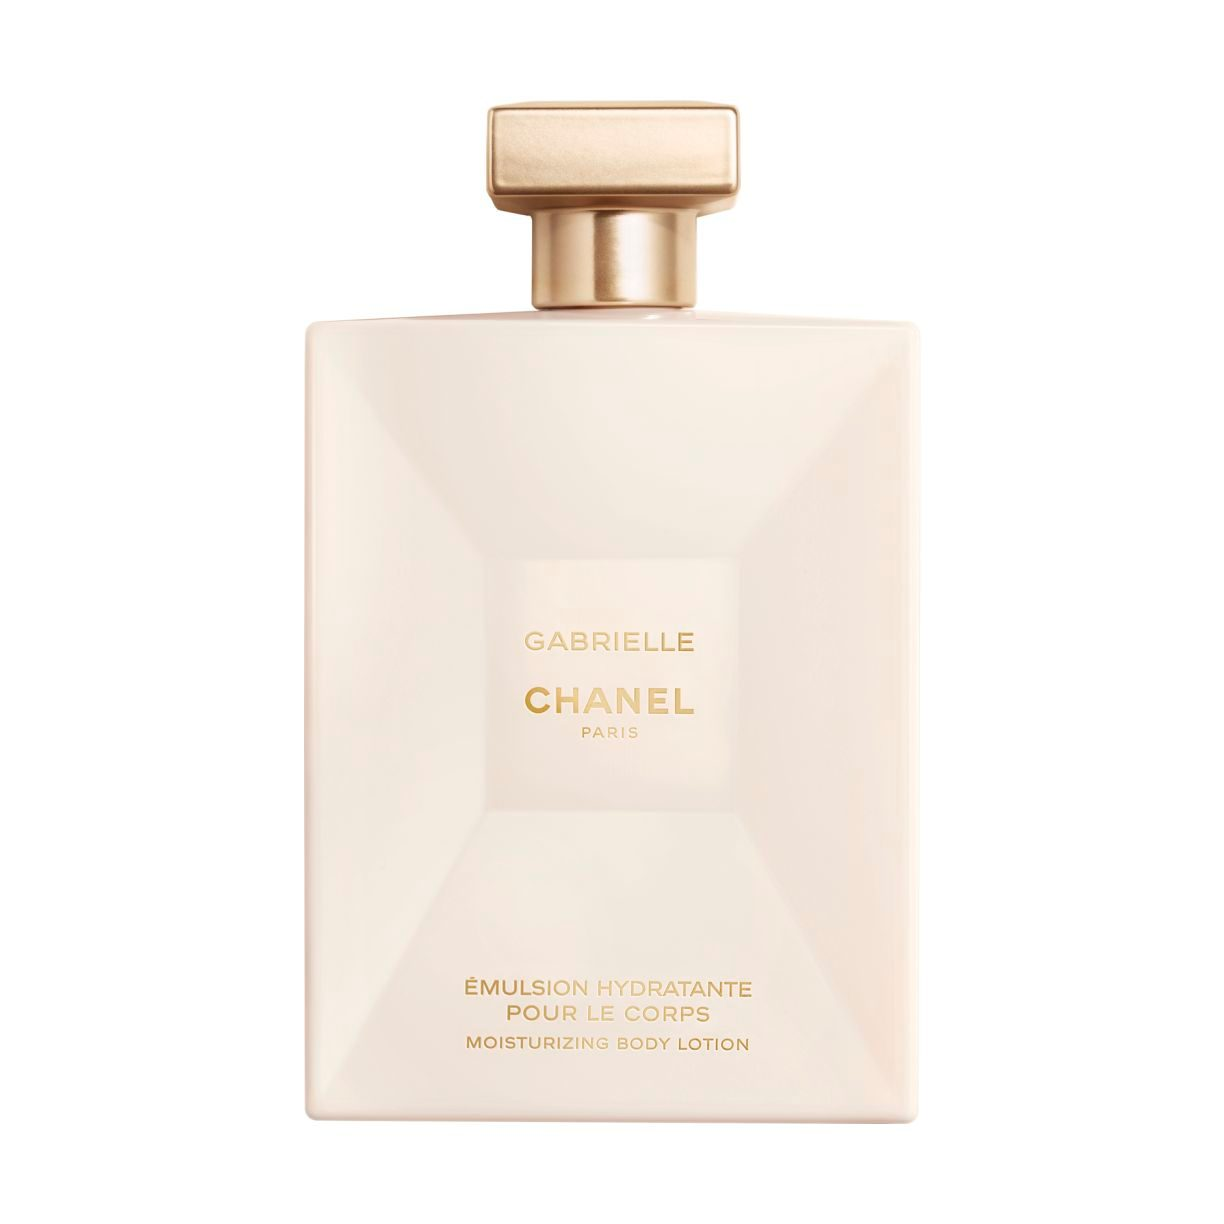 GABRIELLE CHANEL MOISTURISING BODY LOTION